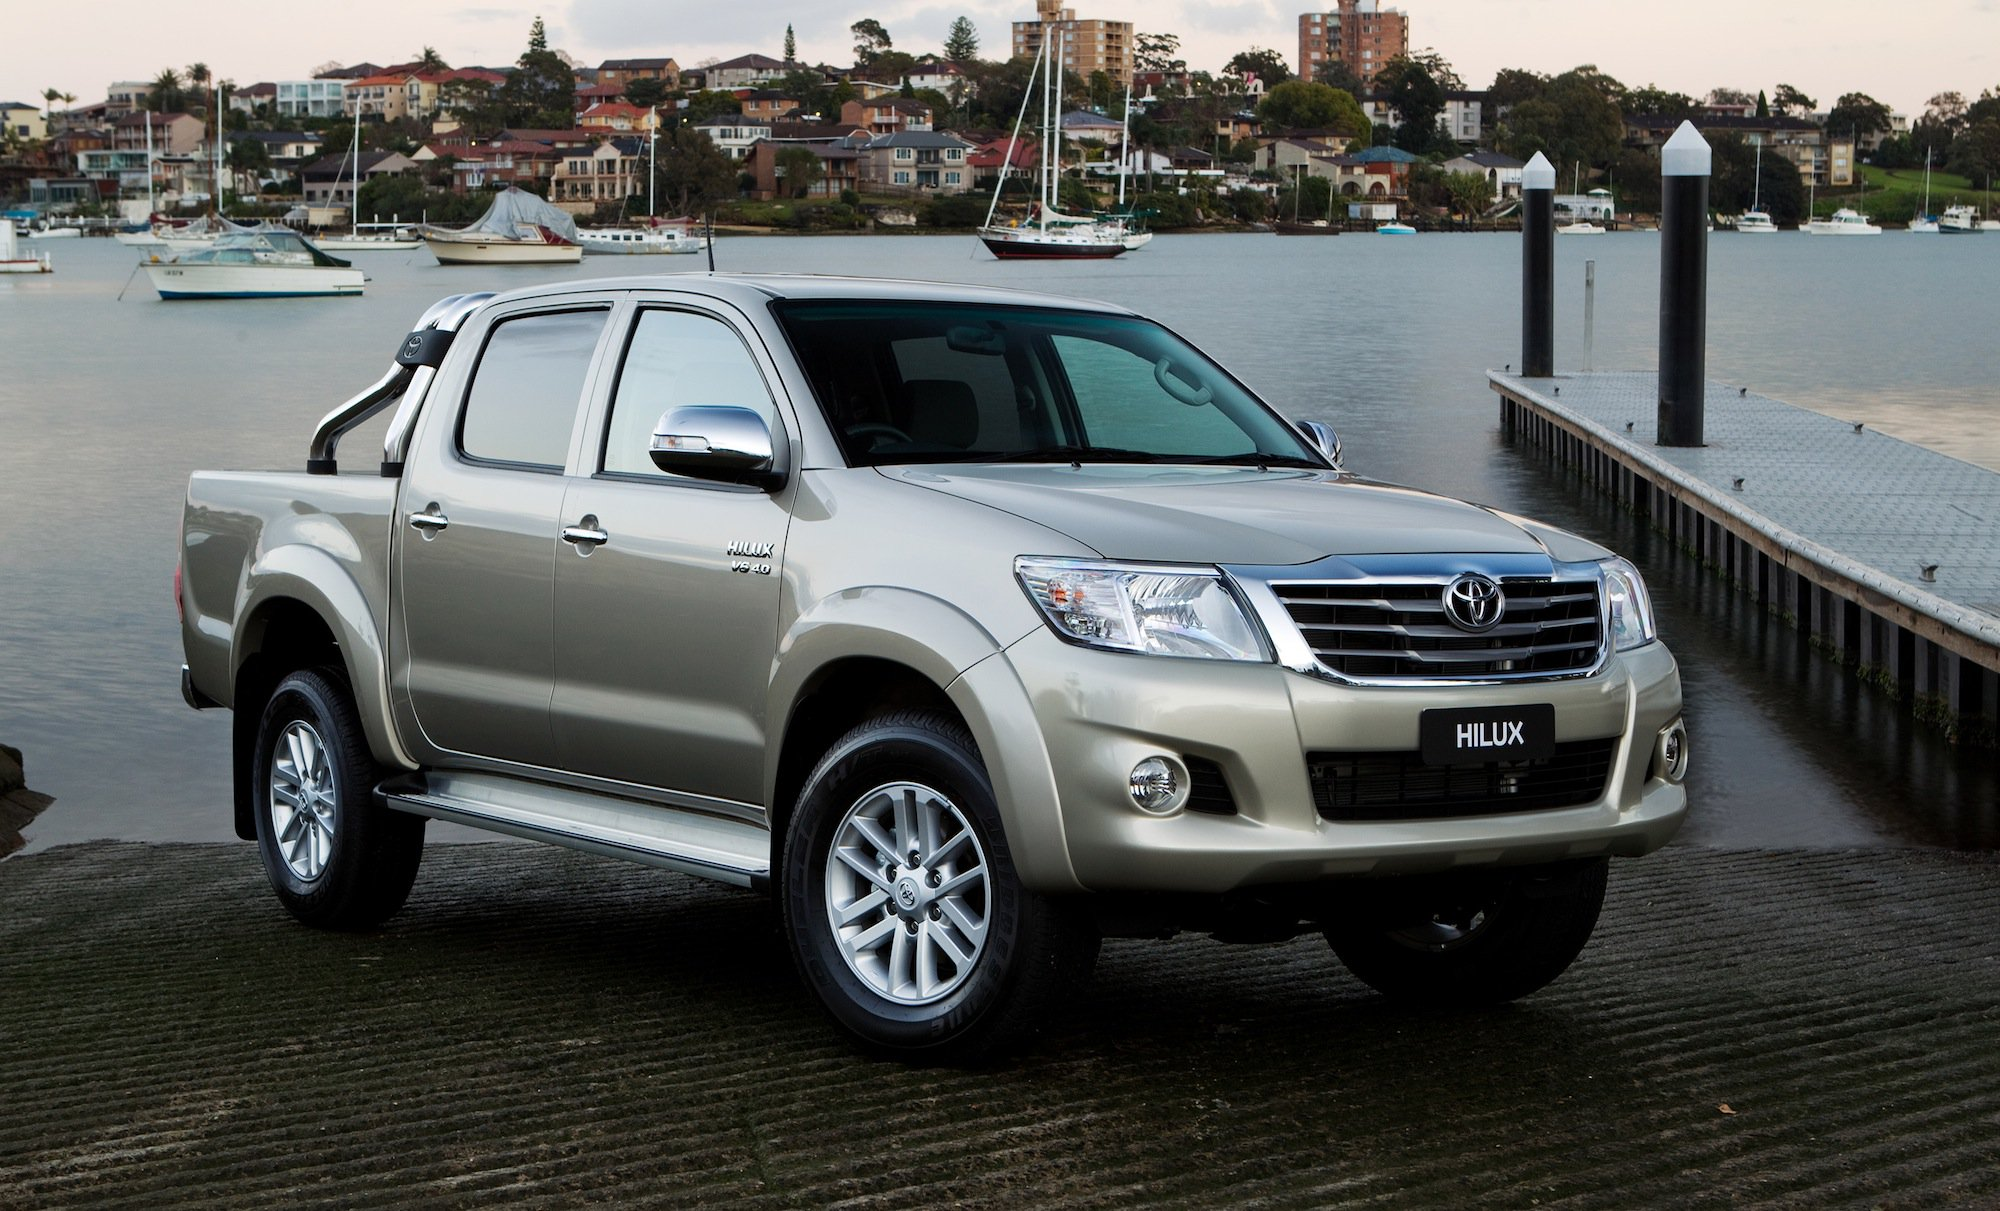 25 Toyota HiLux : new auto, safety upgrades, price rises for